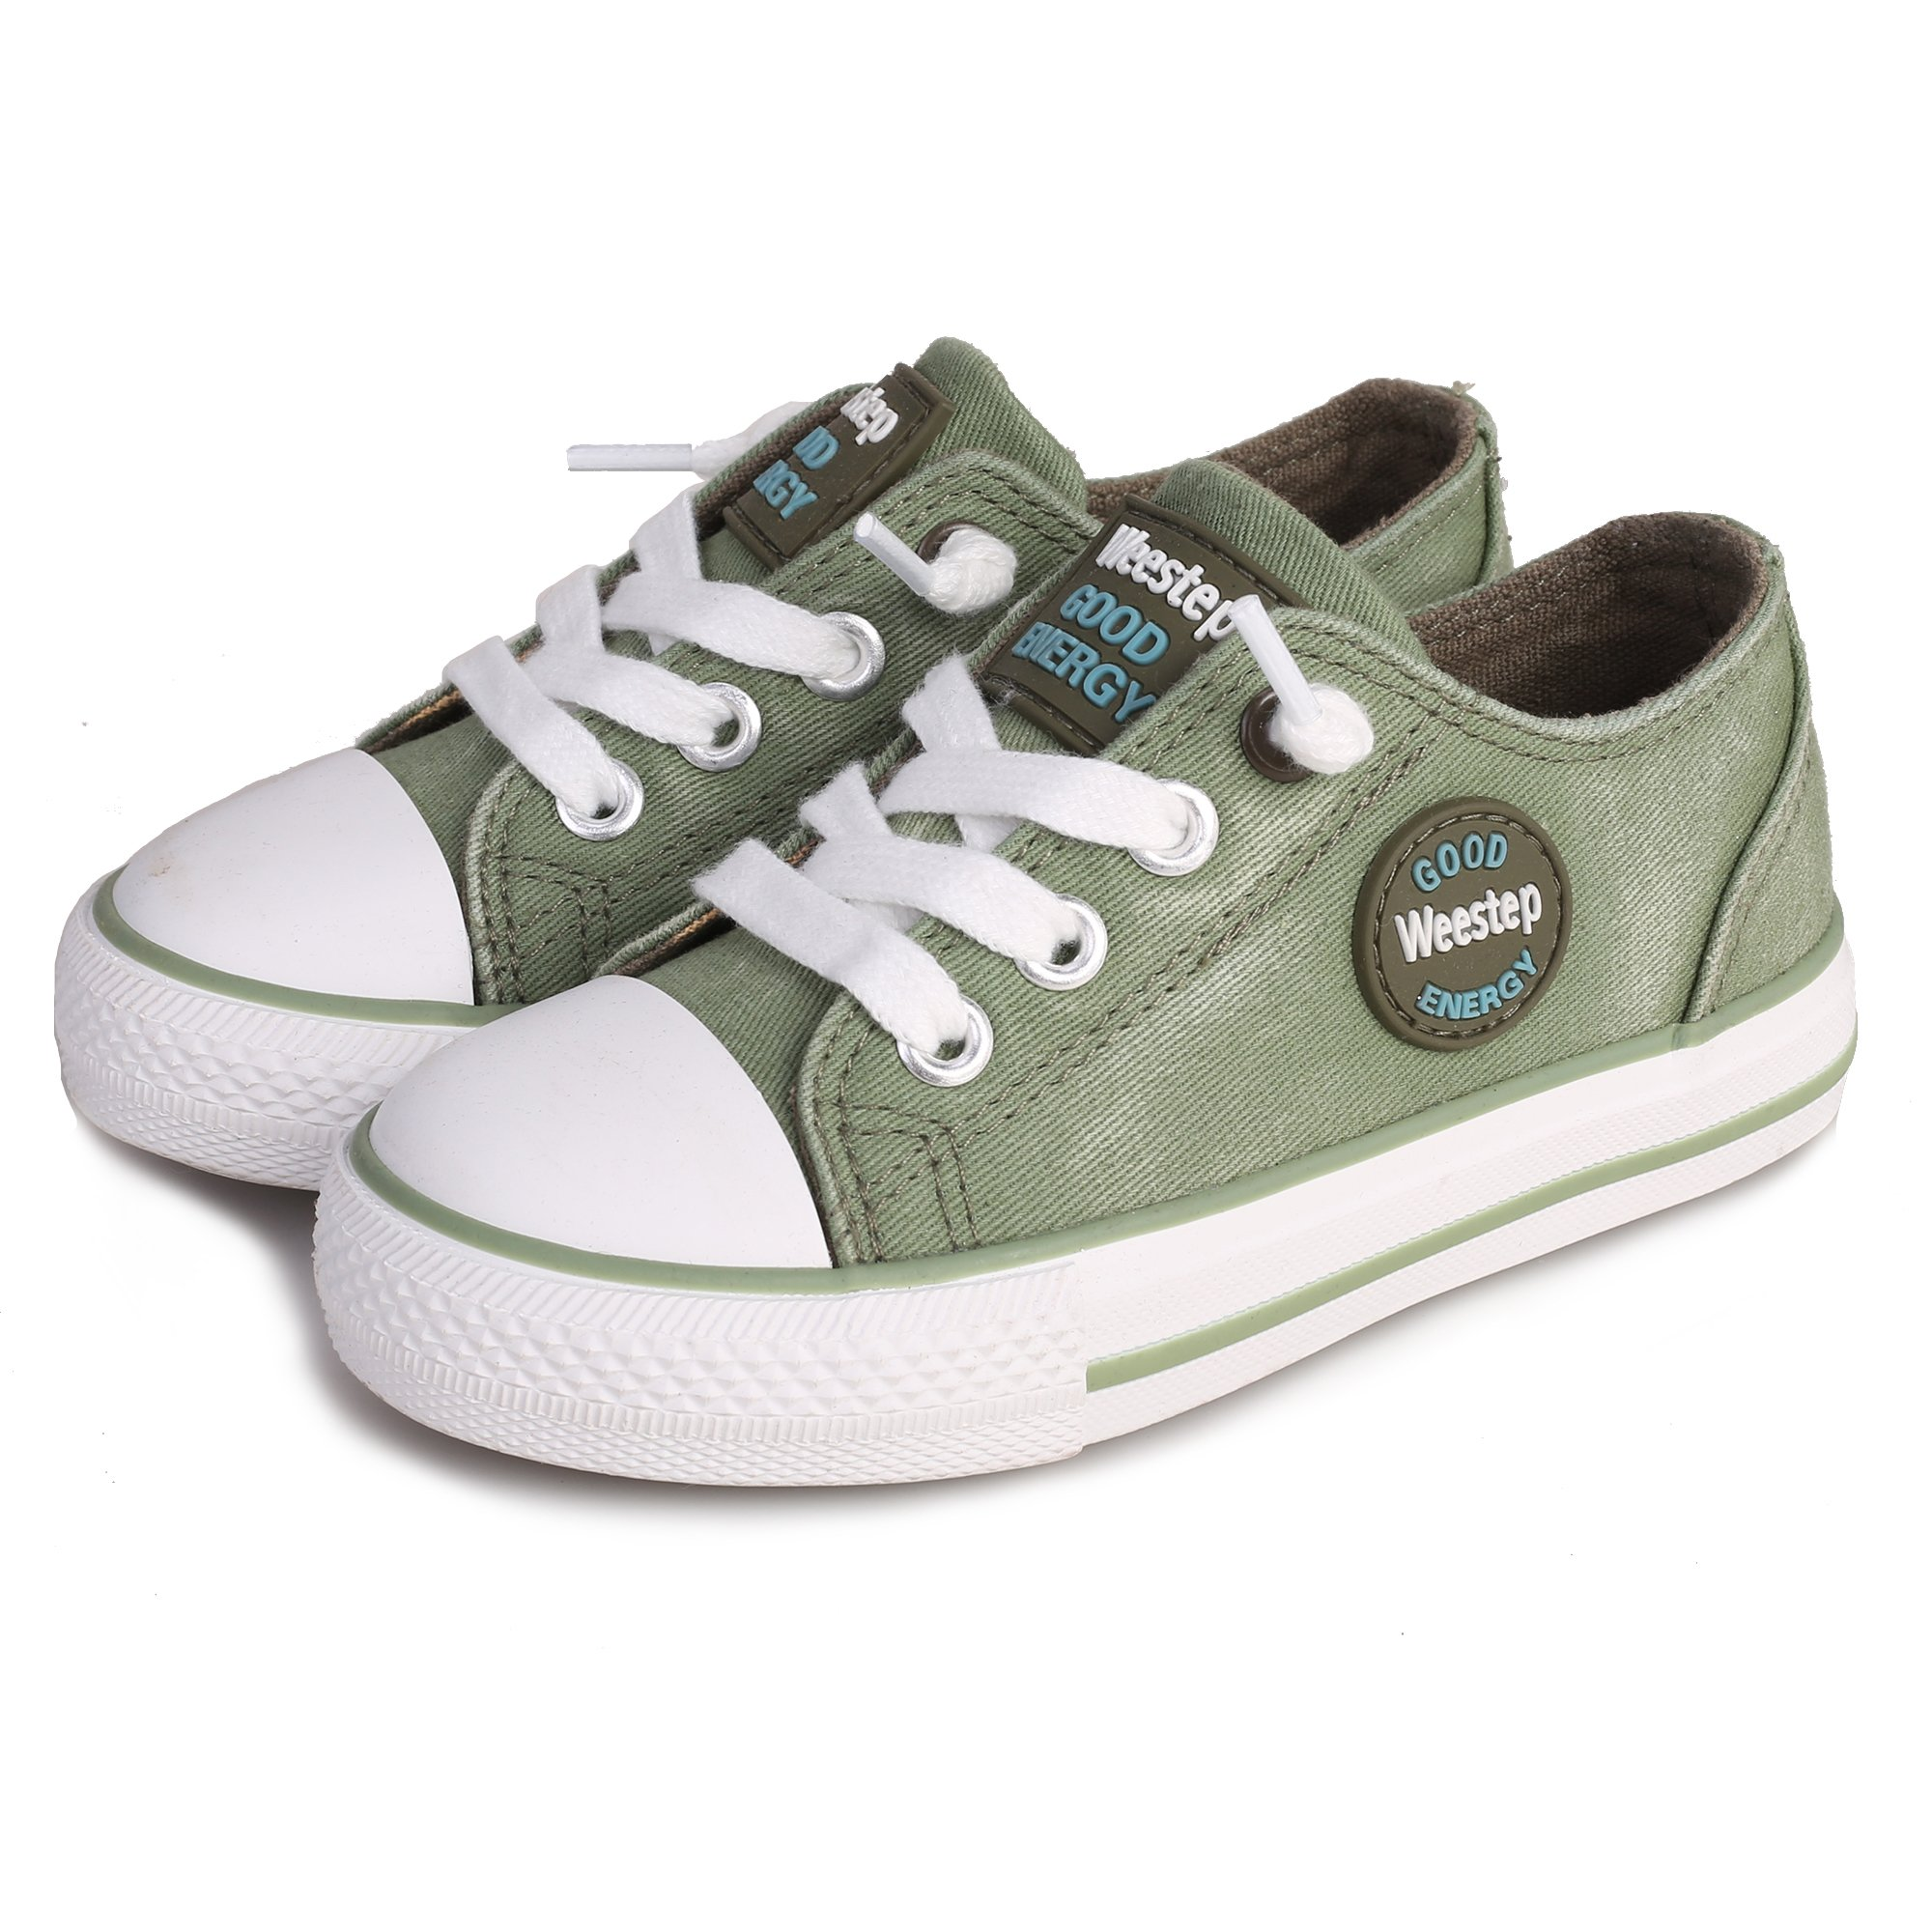 Weestep Toddler/Little Kid Boys and Girls Slip On Canvas Sneakers (11 M US Little Kid, Green)